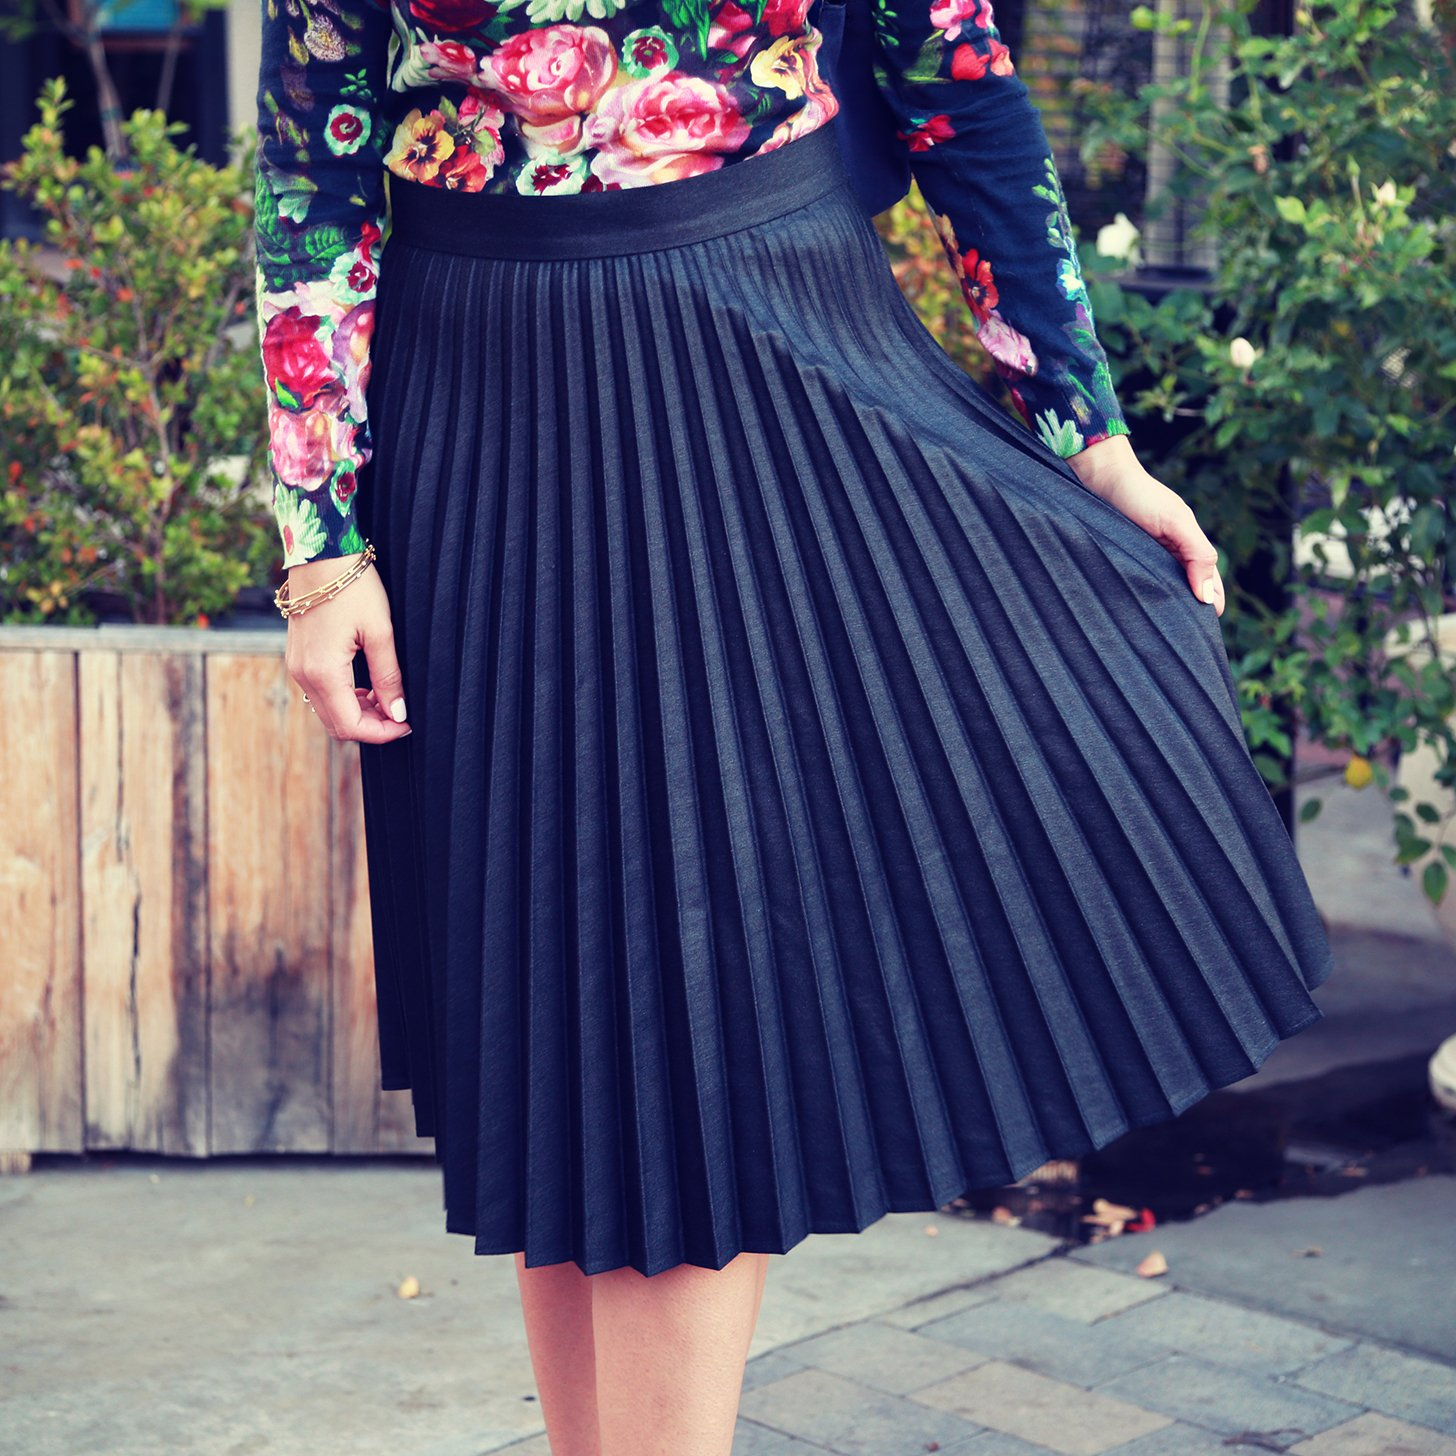 how to wear a pleated skirt | video | popsugar fashion jjcjcec